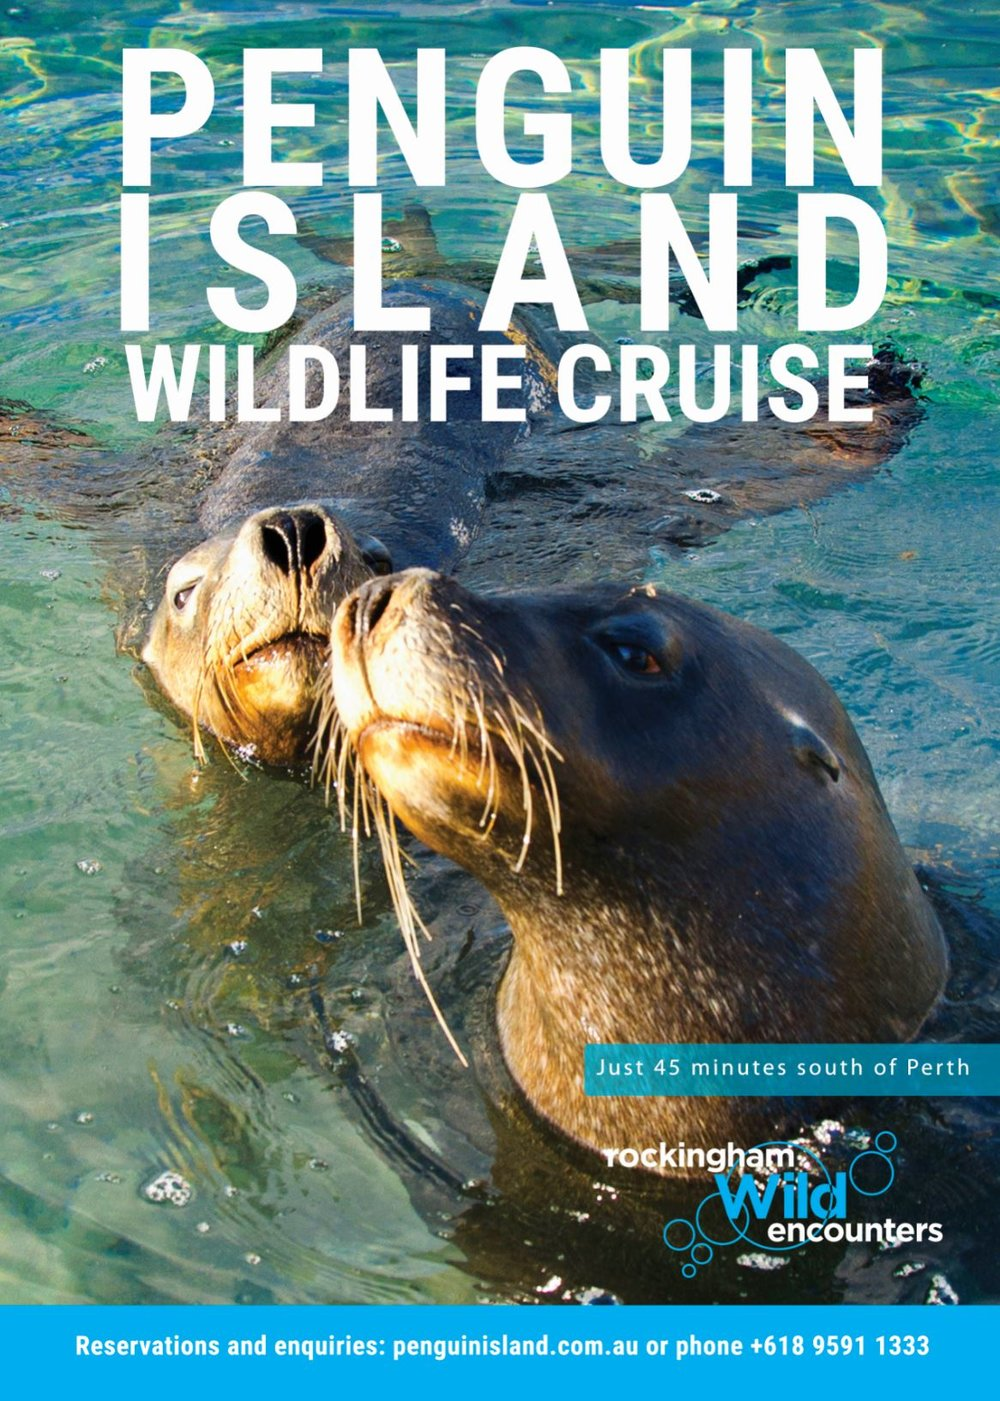 winter cruise brochure cover.JPG